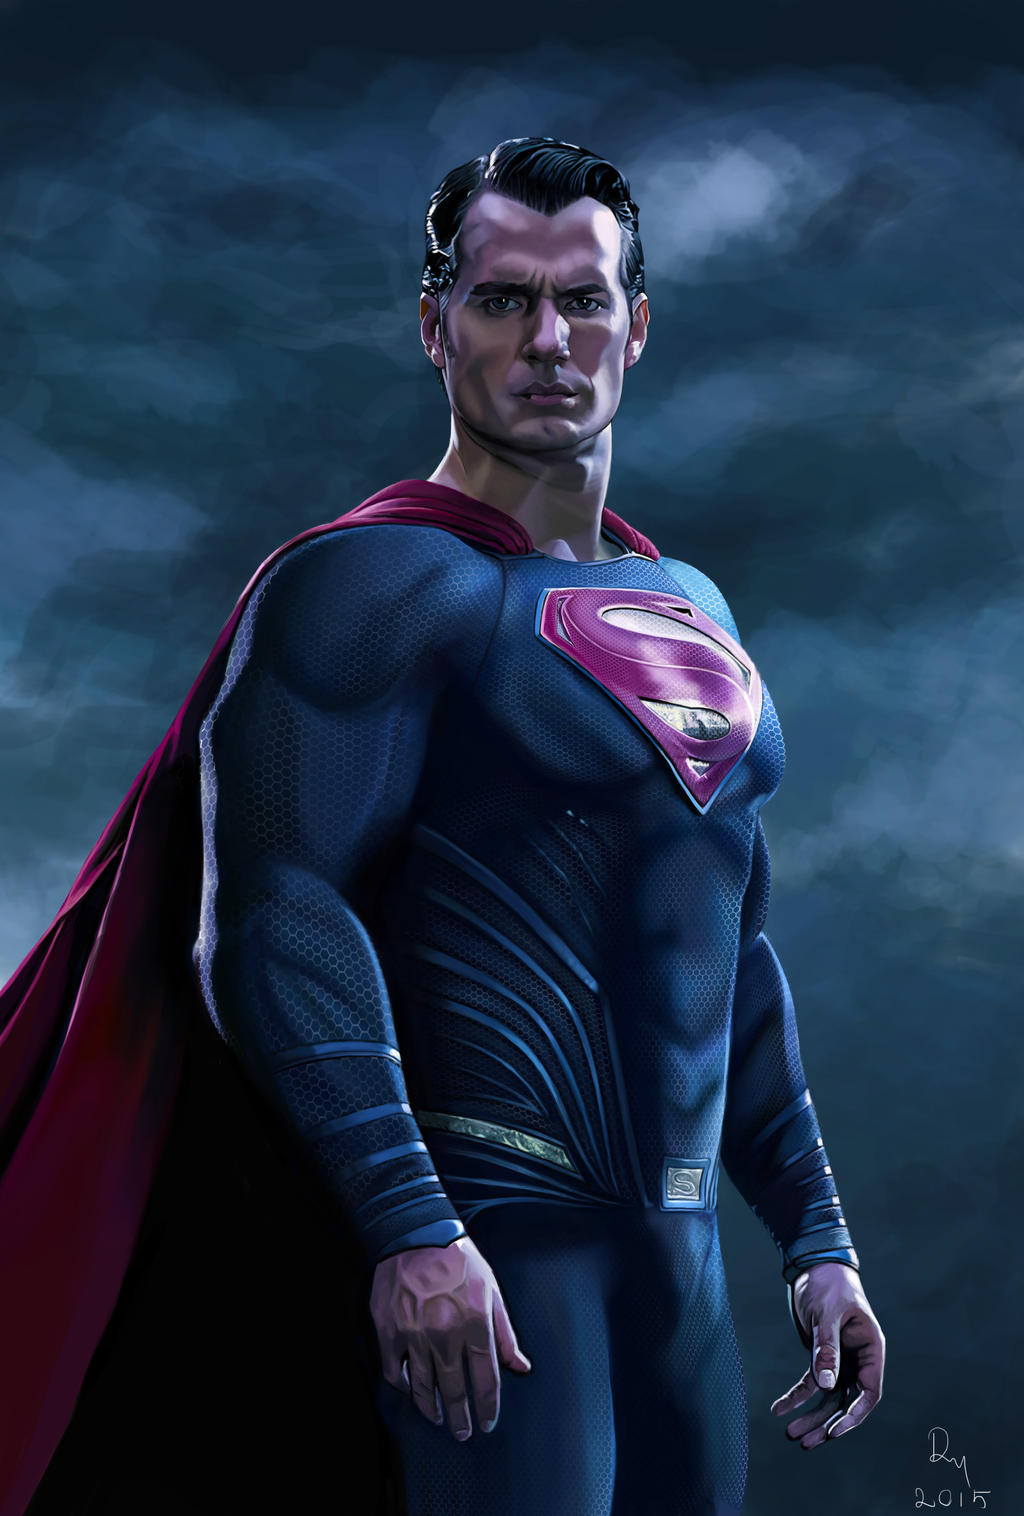 Man of Steel 2 Canceled Whats Next For Superman After Cavill